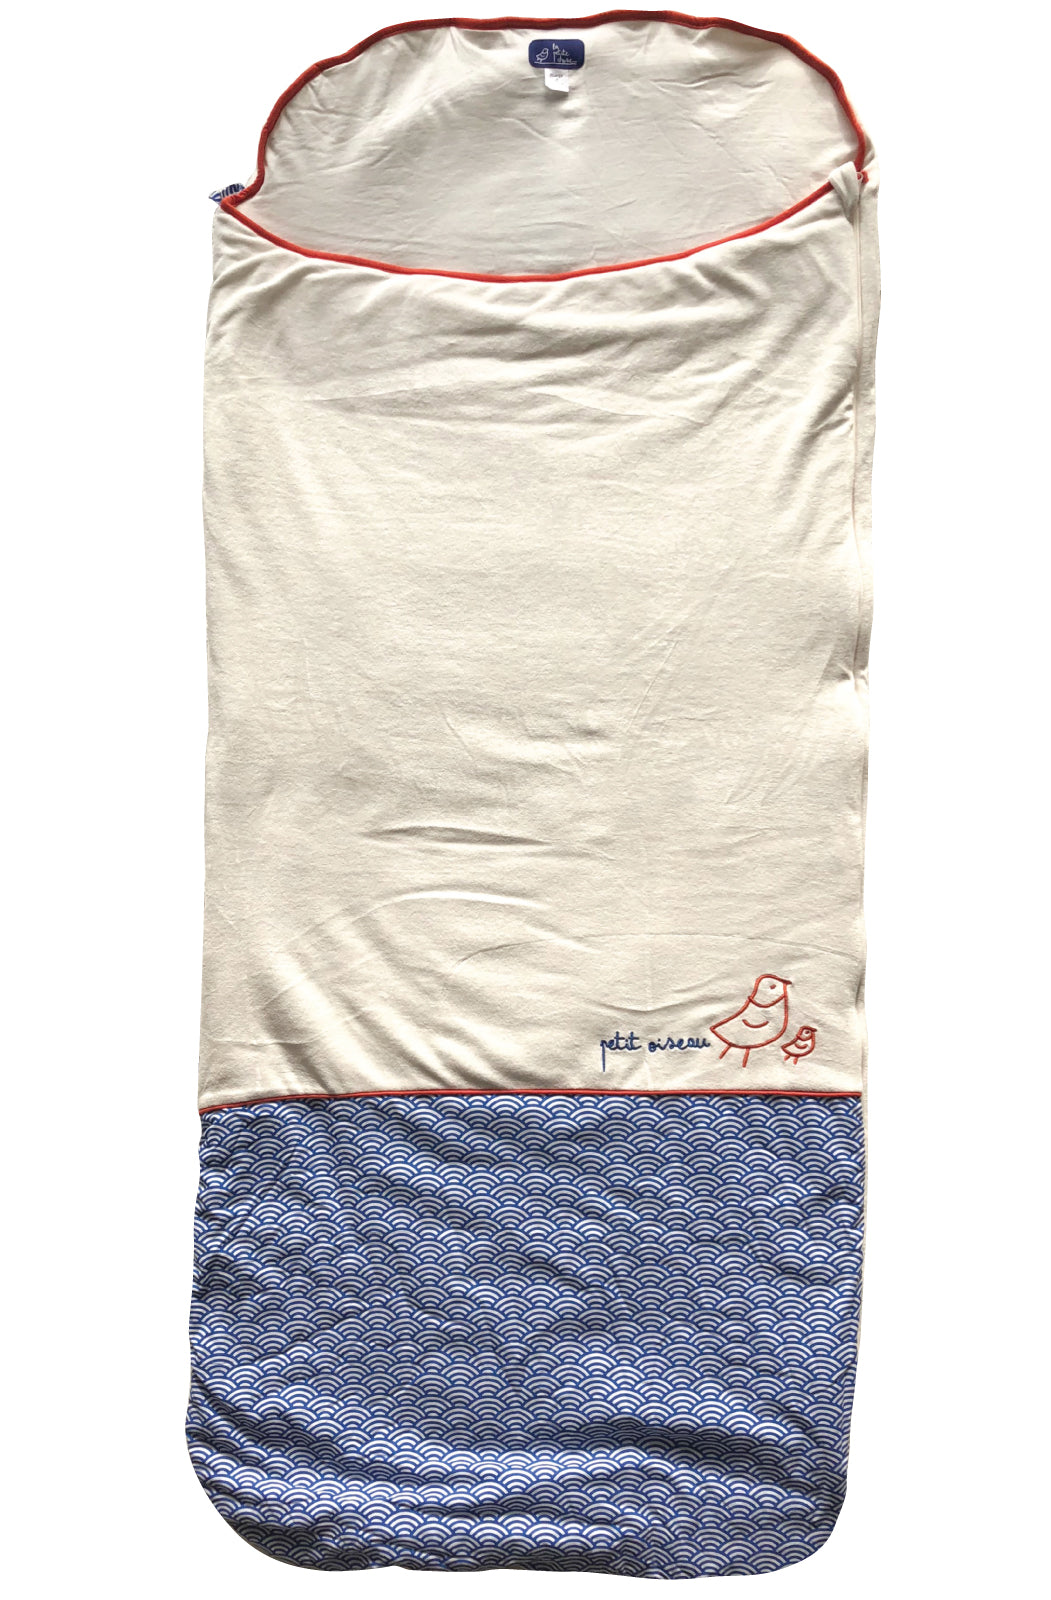 Big kids' organic cotton sleeping bag